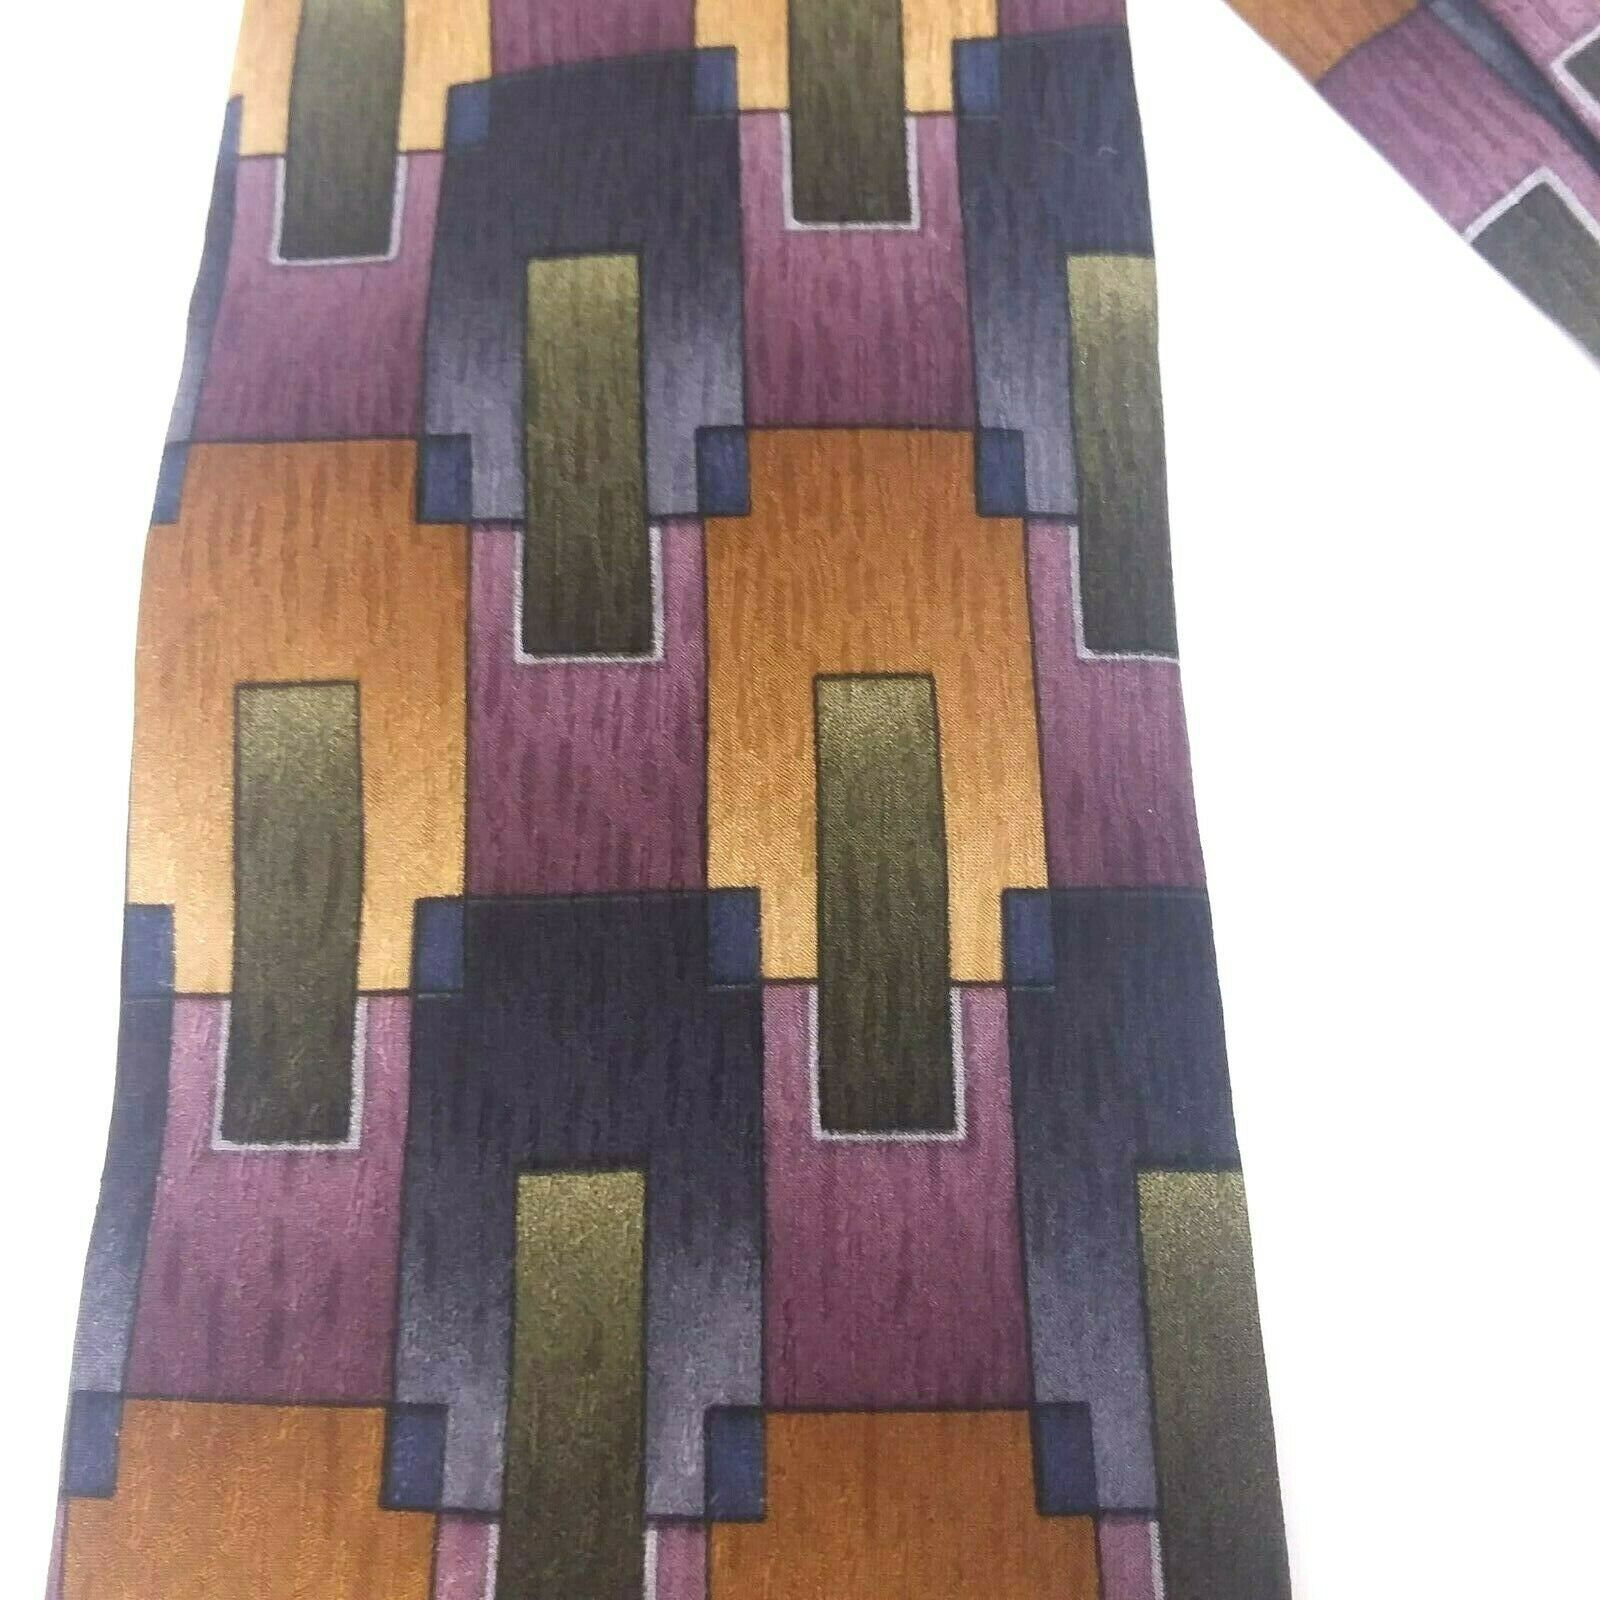 Primary image for Jimmy V Men's Neck Tie The V Foundation Collection Necktie Abstract Squares